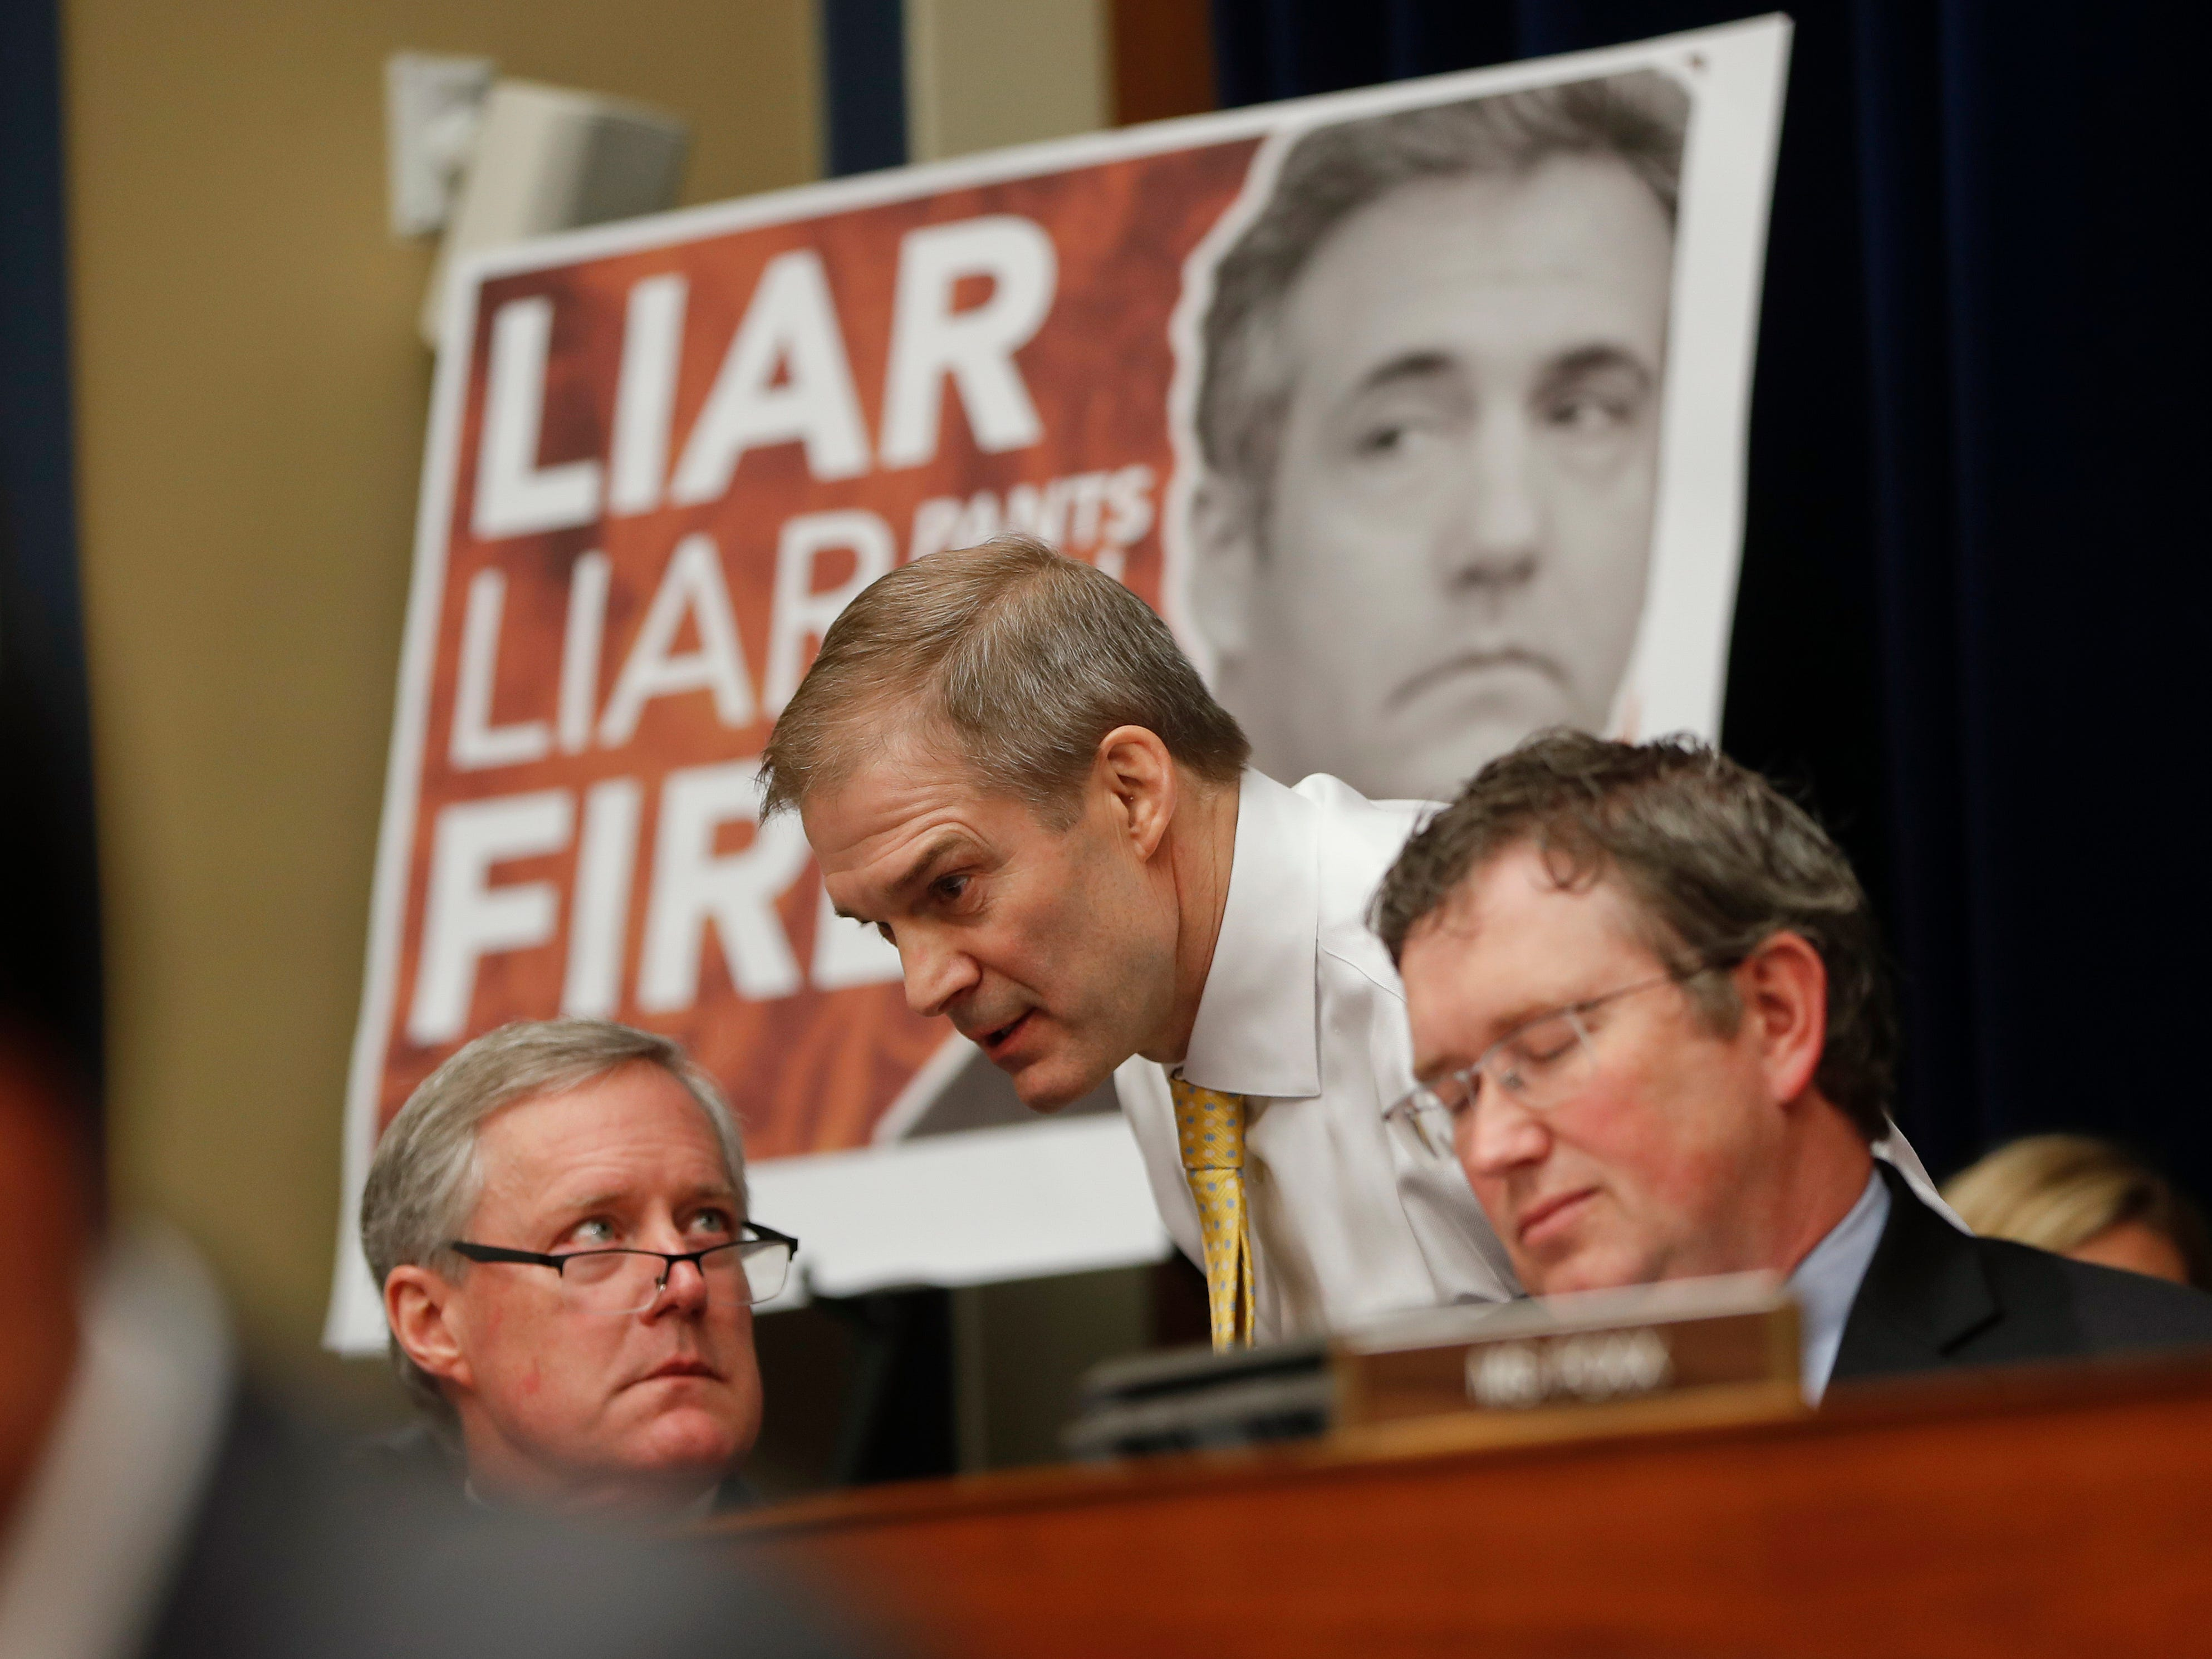 Rep. Jim Jordan, R-Ohio, center, ranking member of the Committee on Oversight and Reform talks with Rep. Mark Meadows, R-N.C., left, and Rep. Thomas Massie, R-Ky., right, during testimony by Michael Cohen, President Donald Trump's former personal lawyer on Capitol Hill.